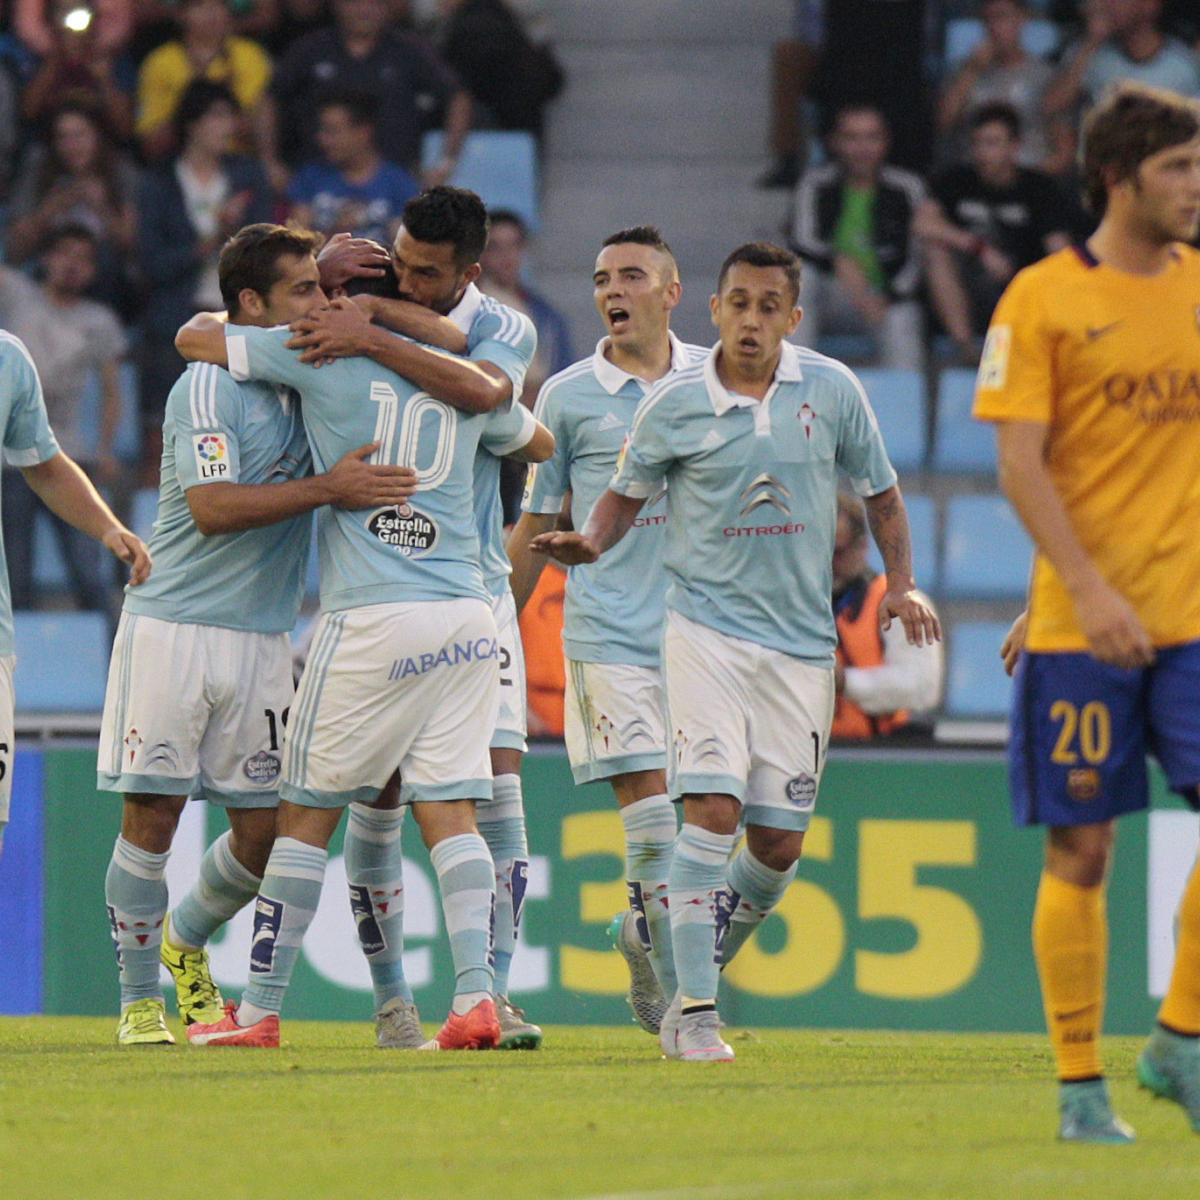 Celta Vigo Vs Barcelona Direct: Celta Vigo Vs. Barcelona: Score And Reaction From 2015 La